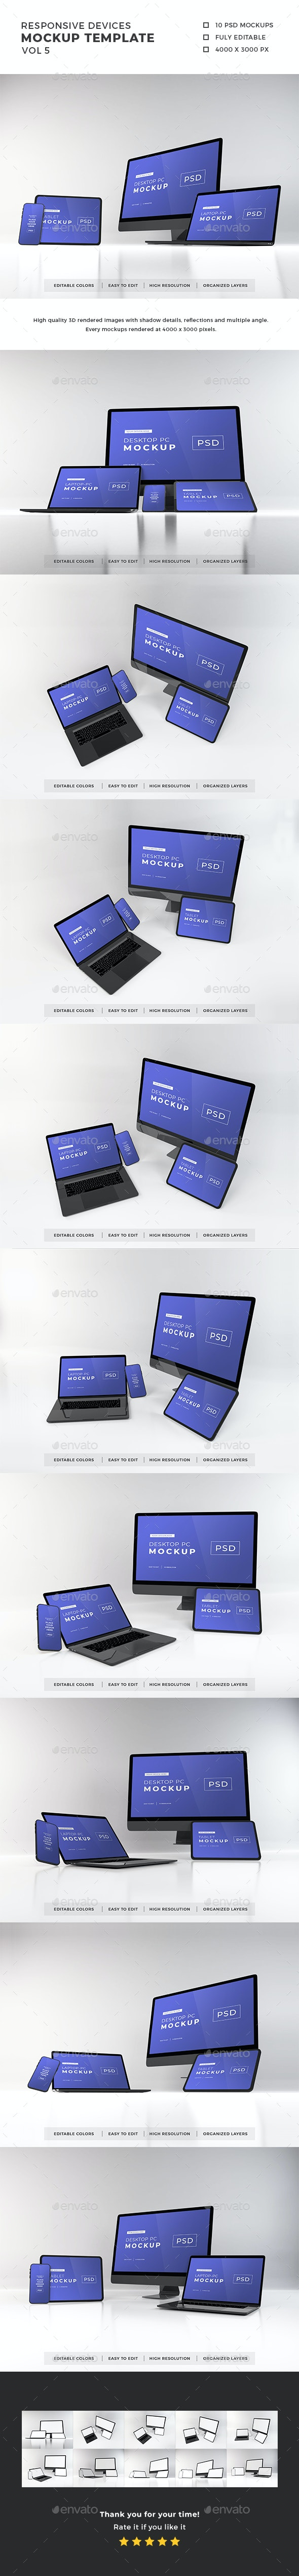 Responsive Devices Mockup Template Vol 5 - Multiple Displays